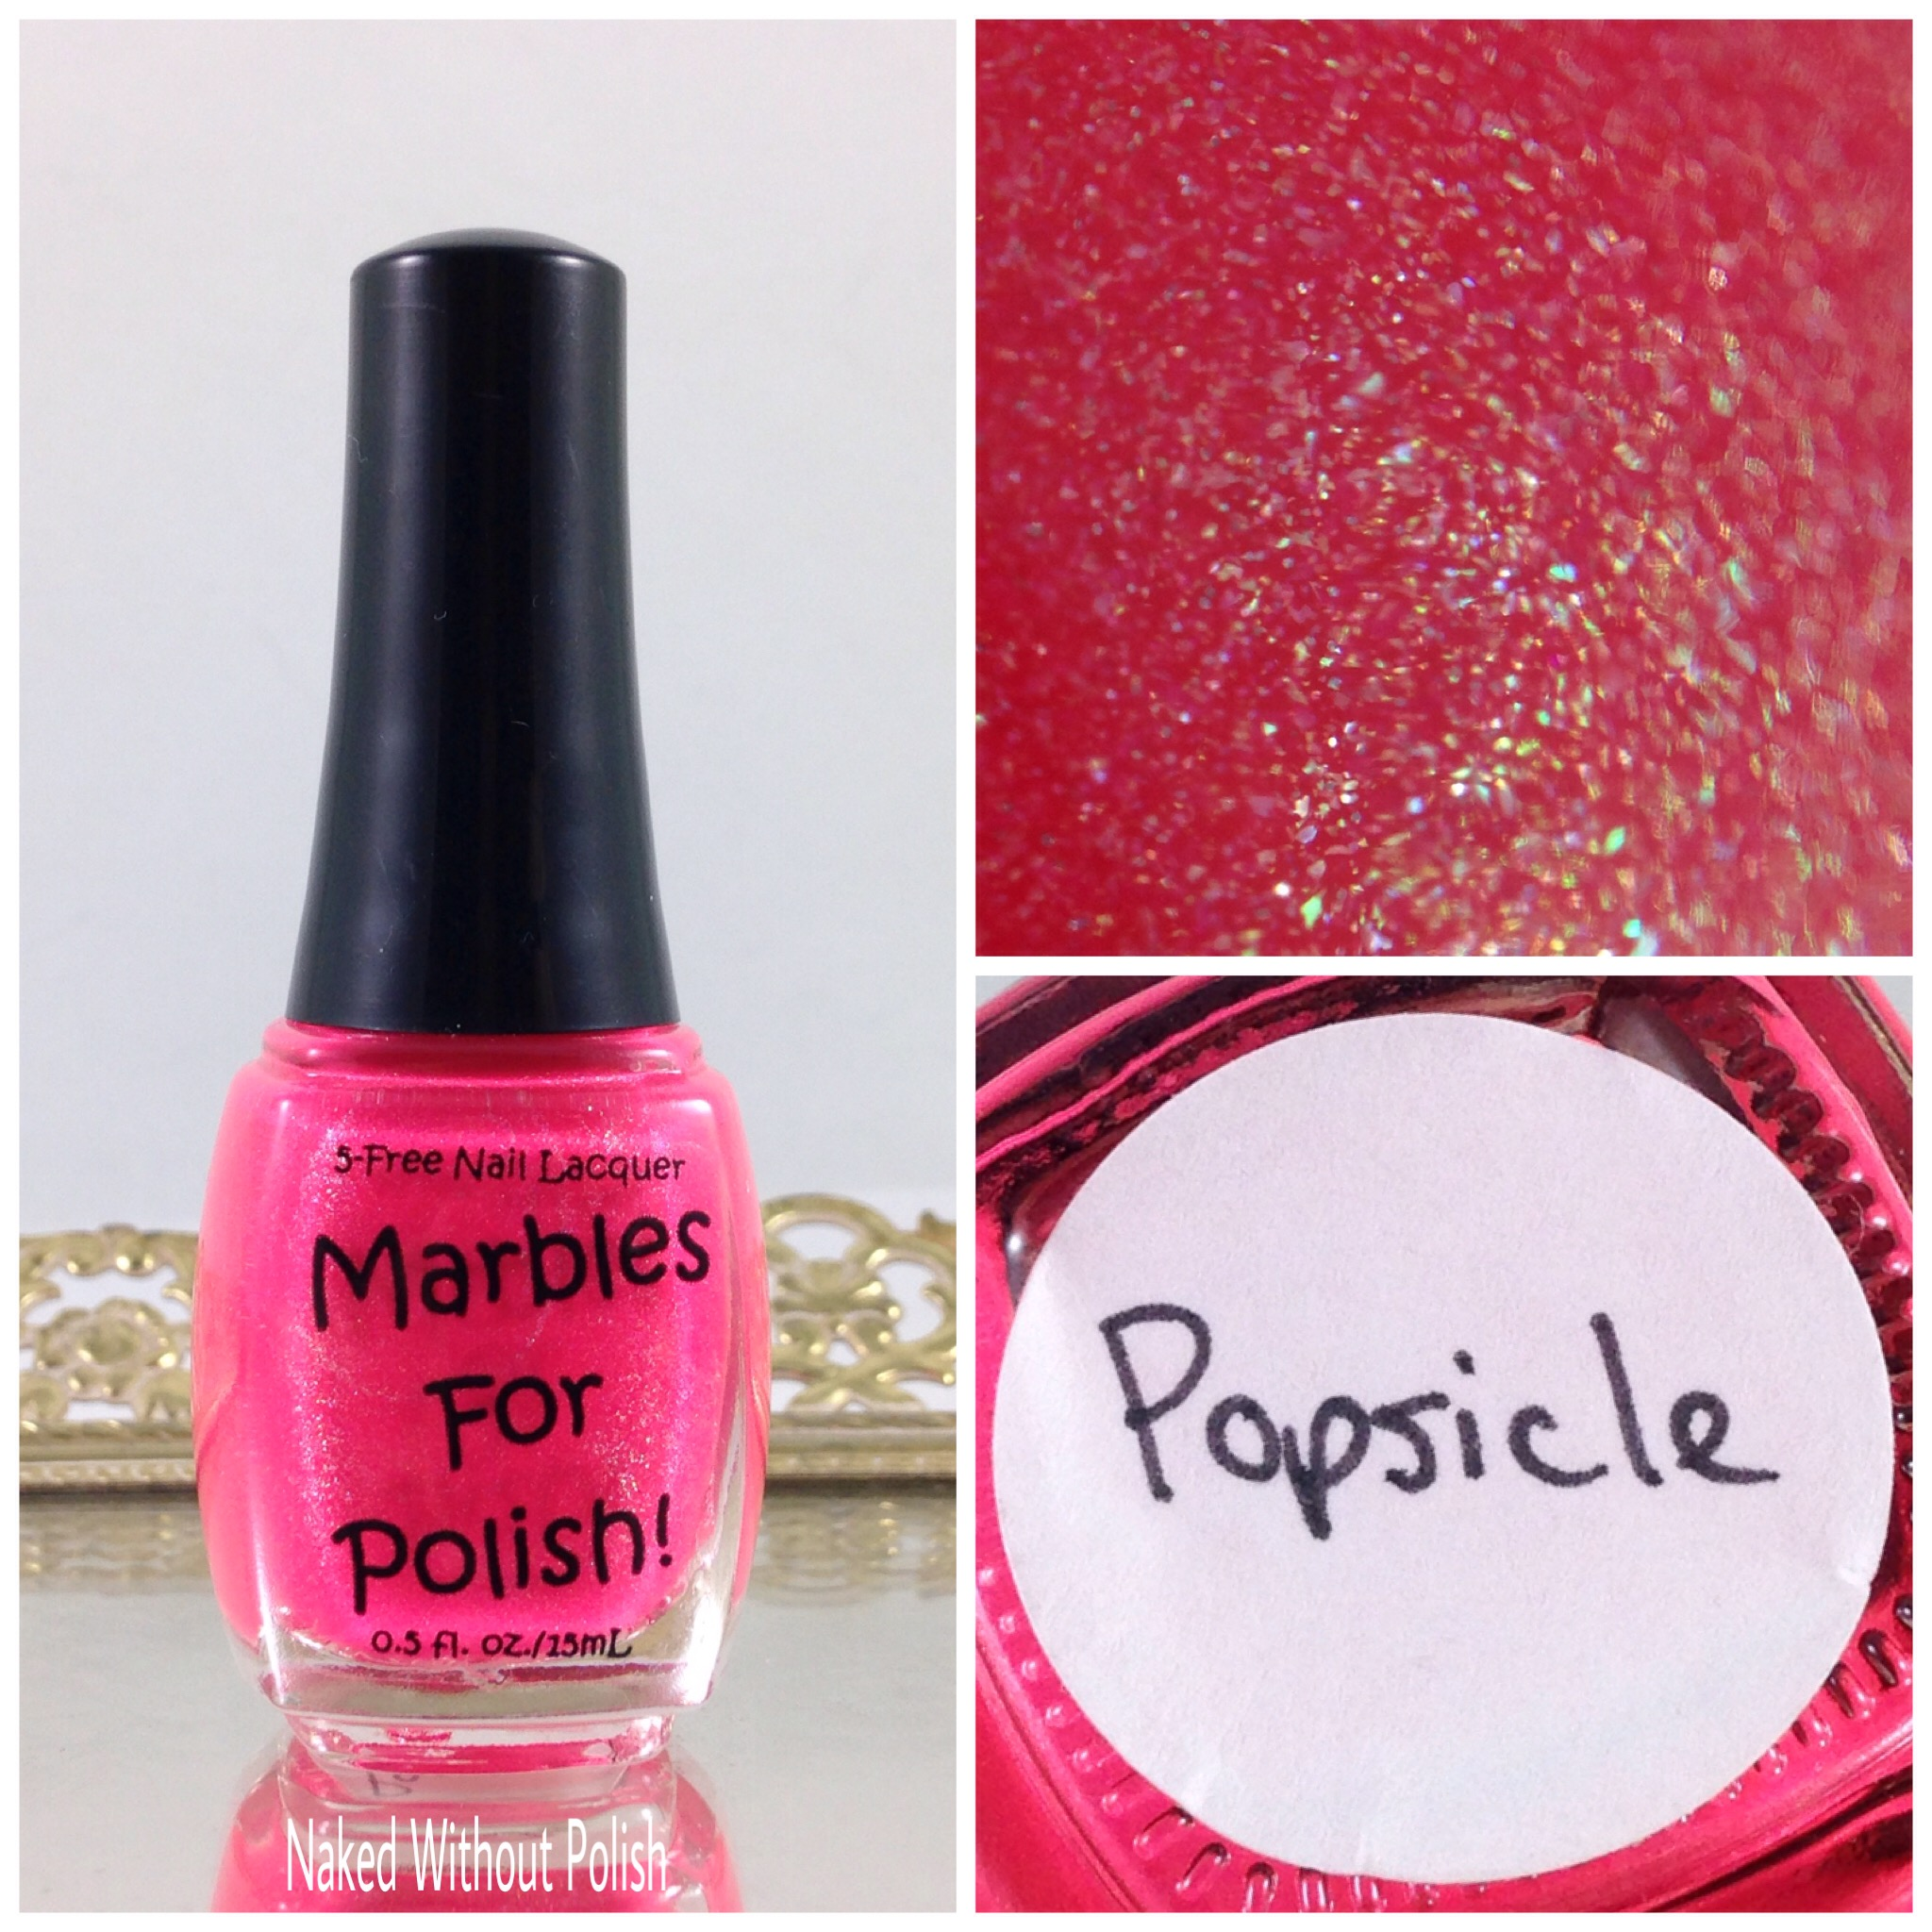 Marbles-for-Polish-Popsicle-1